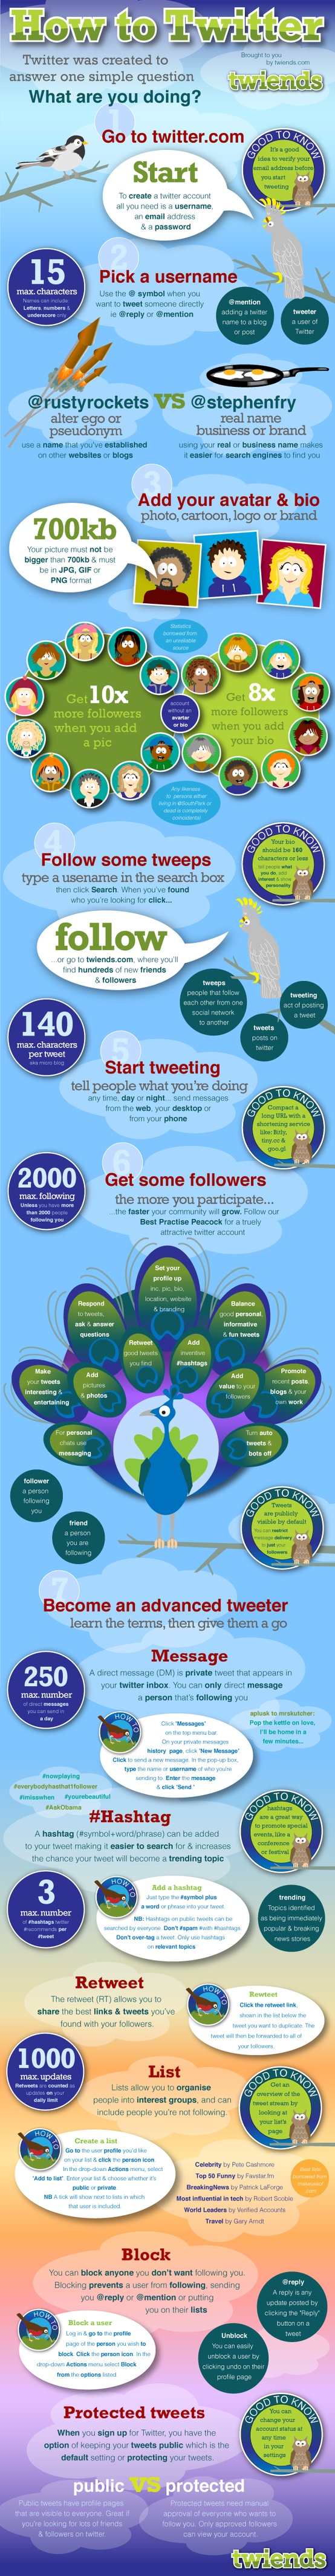 Infographic on the basics on how to use Twitter